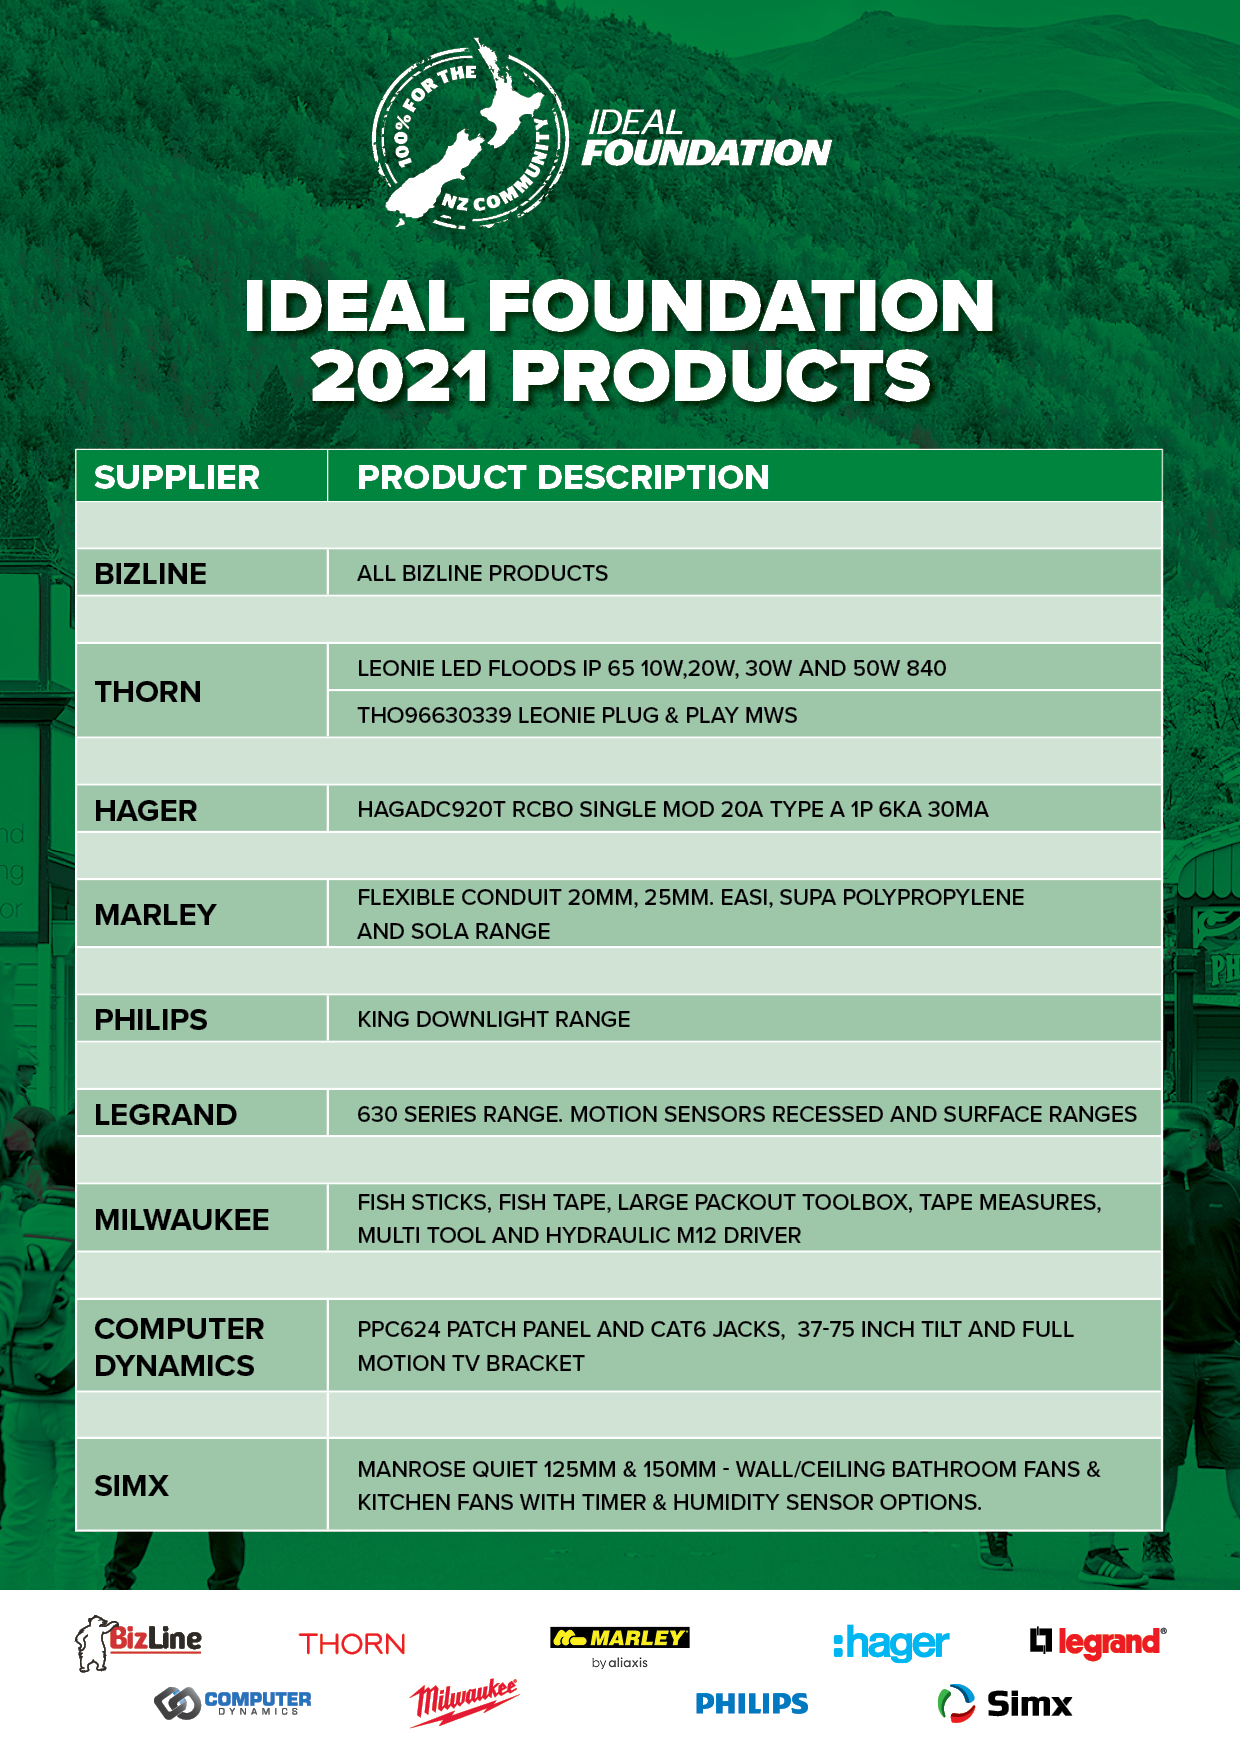 Ideal Foundation Products 2021